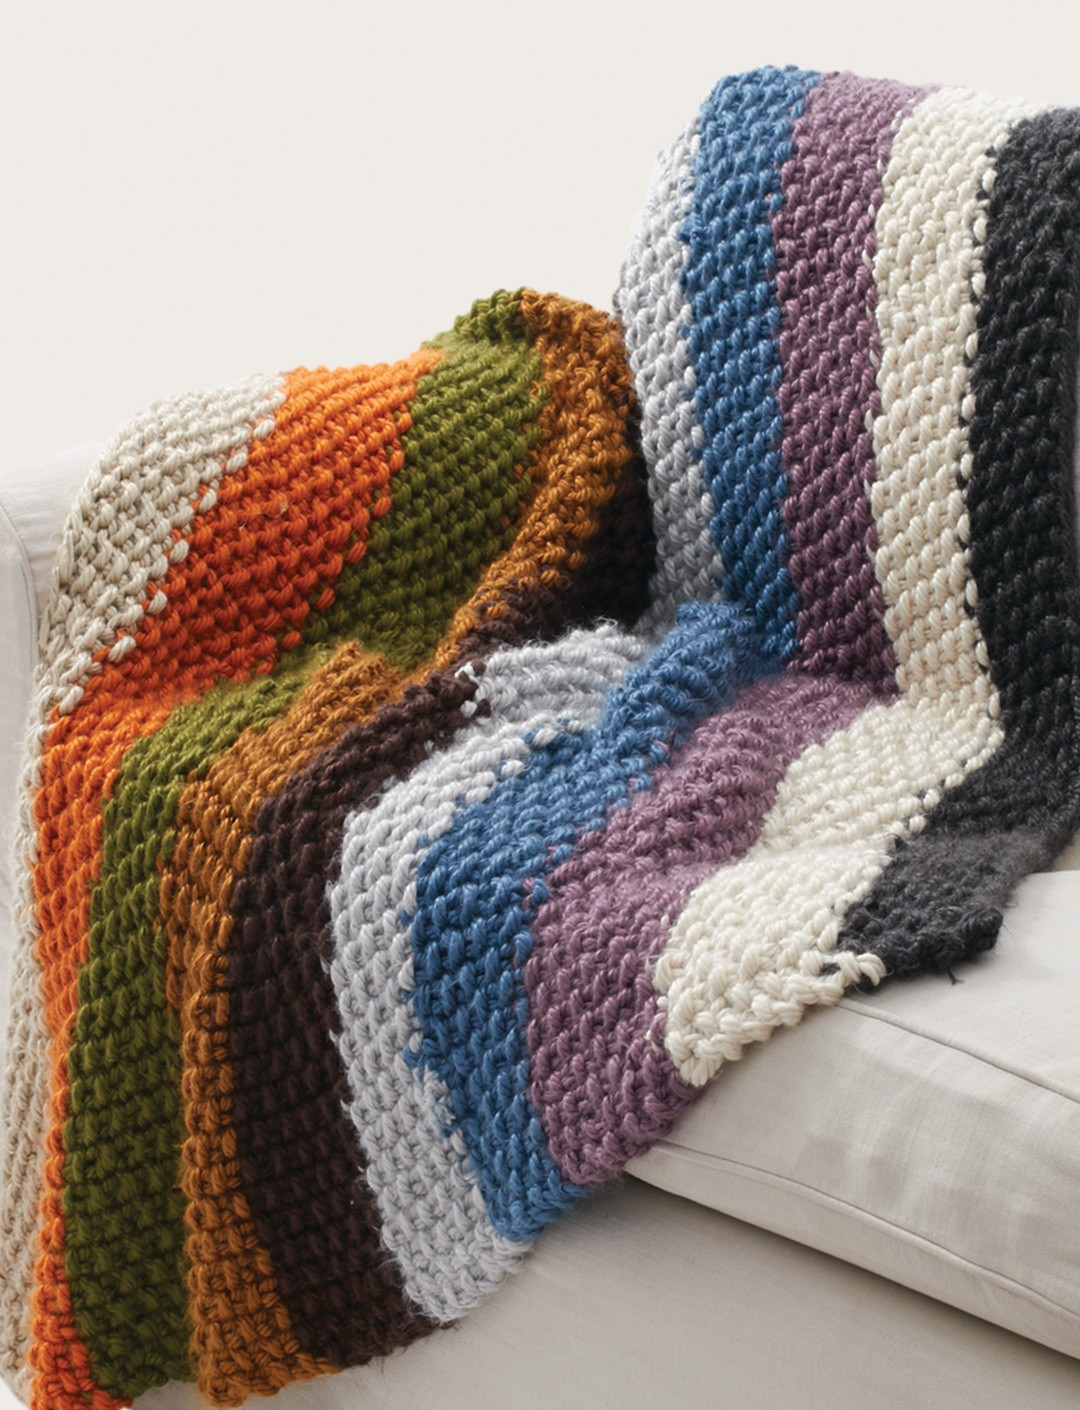 Knitting Patterns Bernat Blanket Yarn : Bernat Seed Stitch Blanket, Knit Pattern Yarnspirations